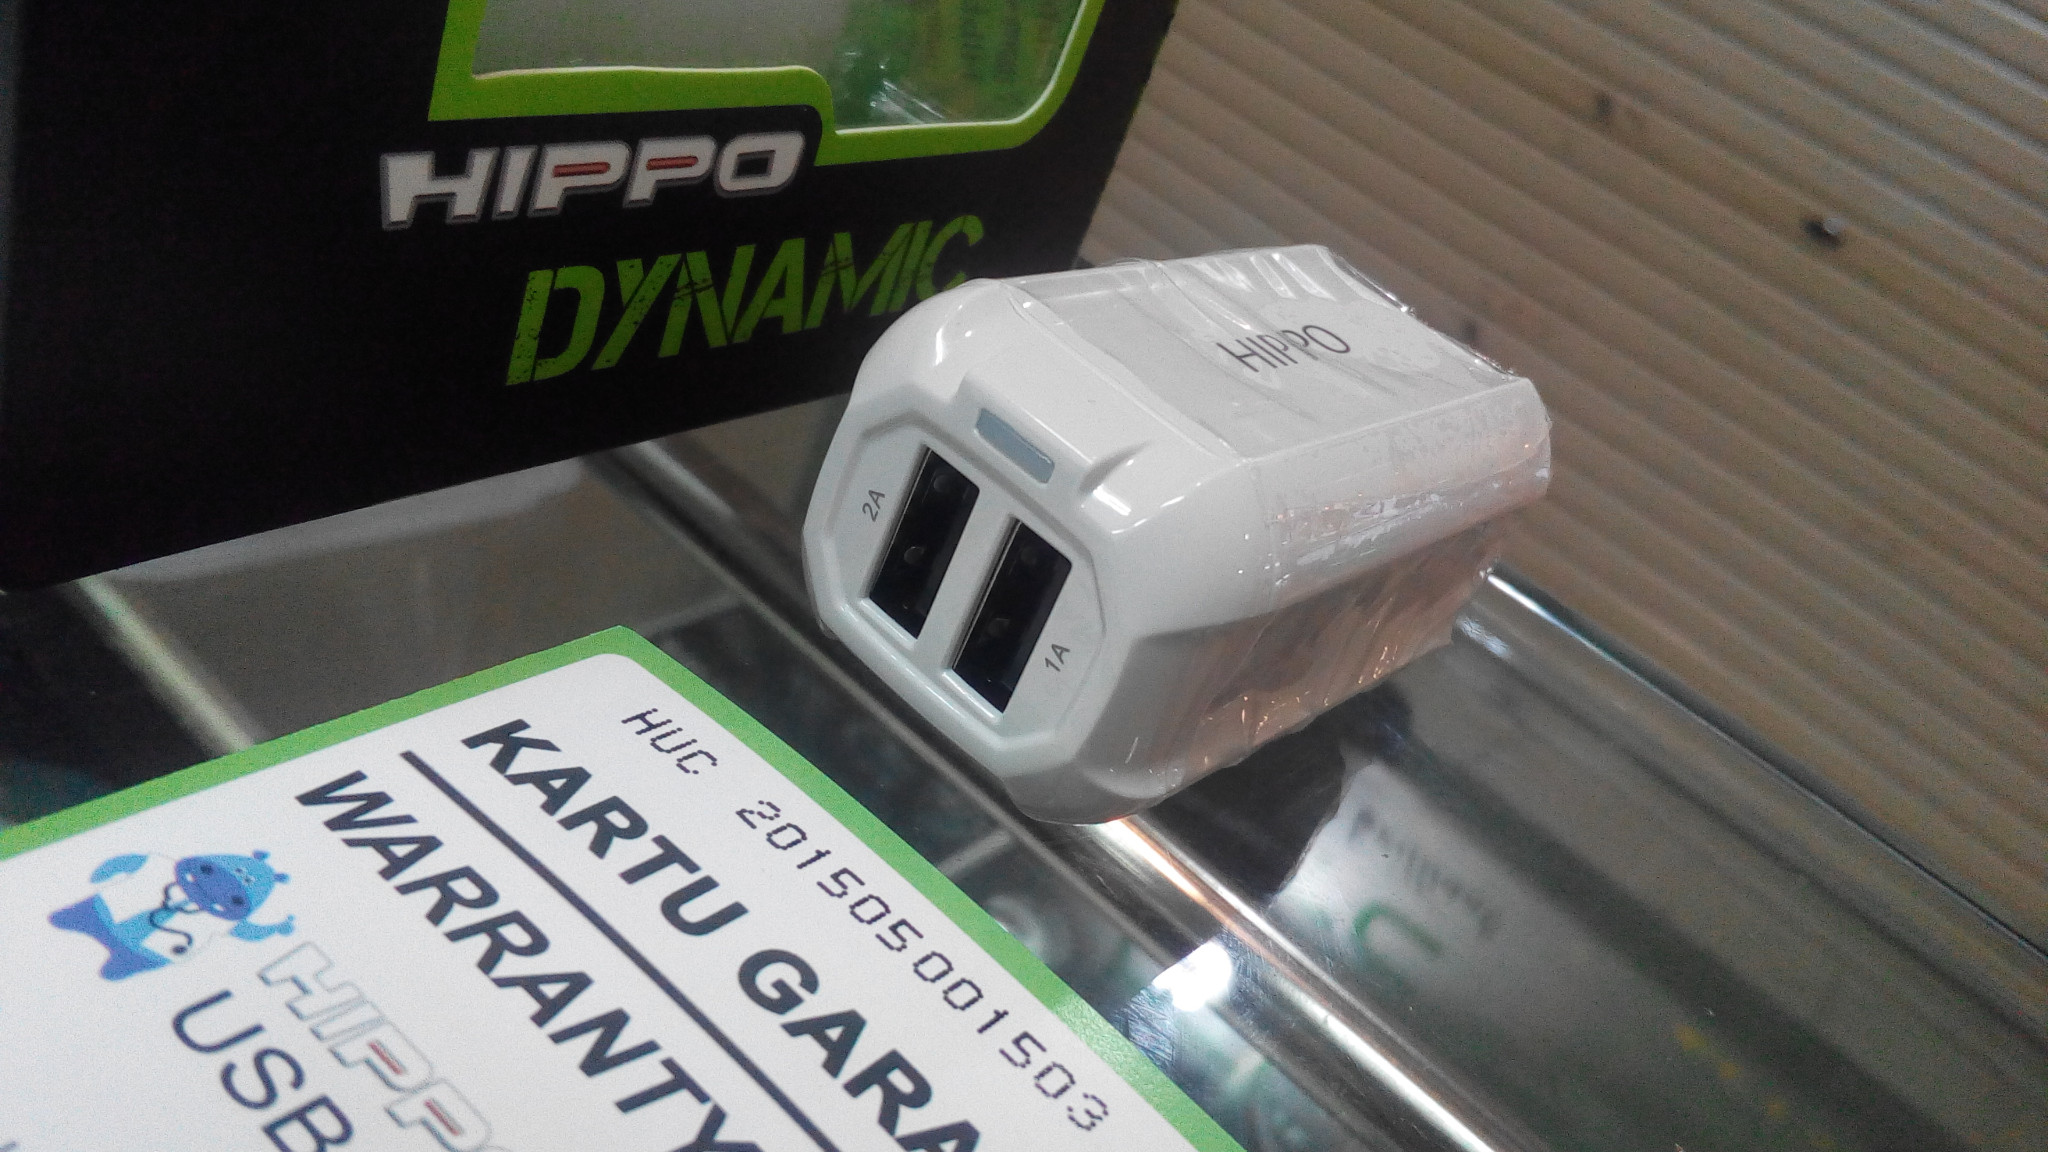 Hippo Dynamic Adaptor Charger 2 Usb Original Daftar Update Harga Adapter Ilo Af201 Sp Quick Fast Charging 30 Garansi Resmi Qoo10 2usb 2a Care Sj0003 Source